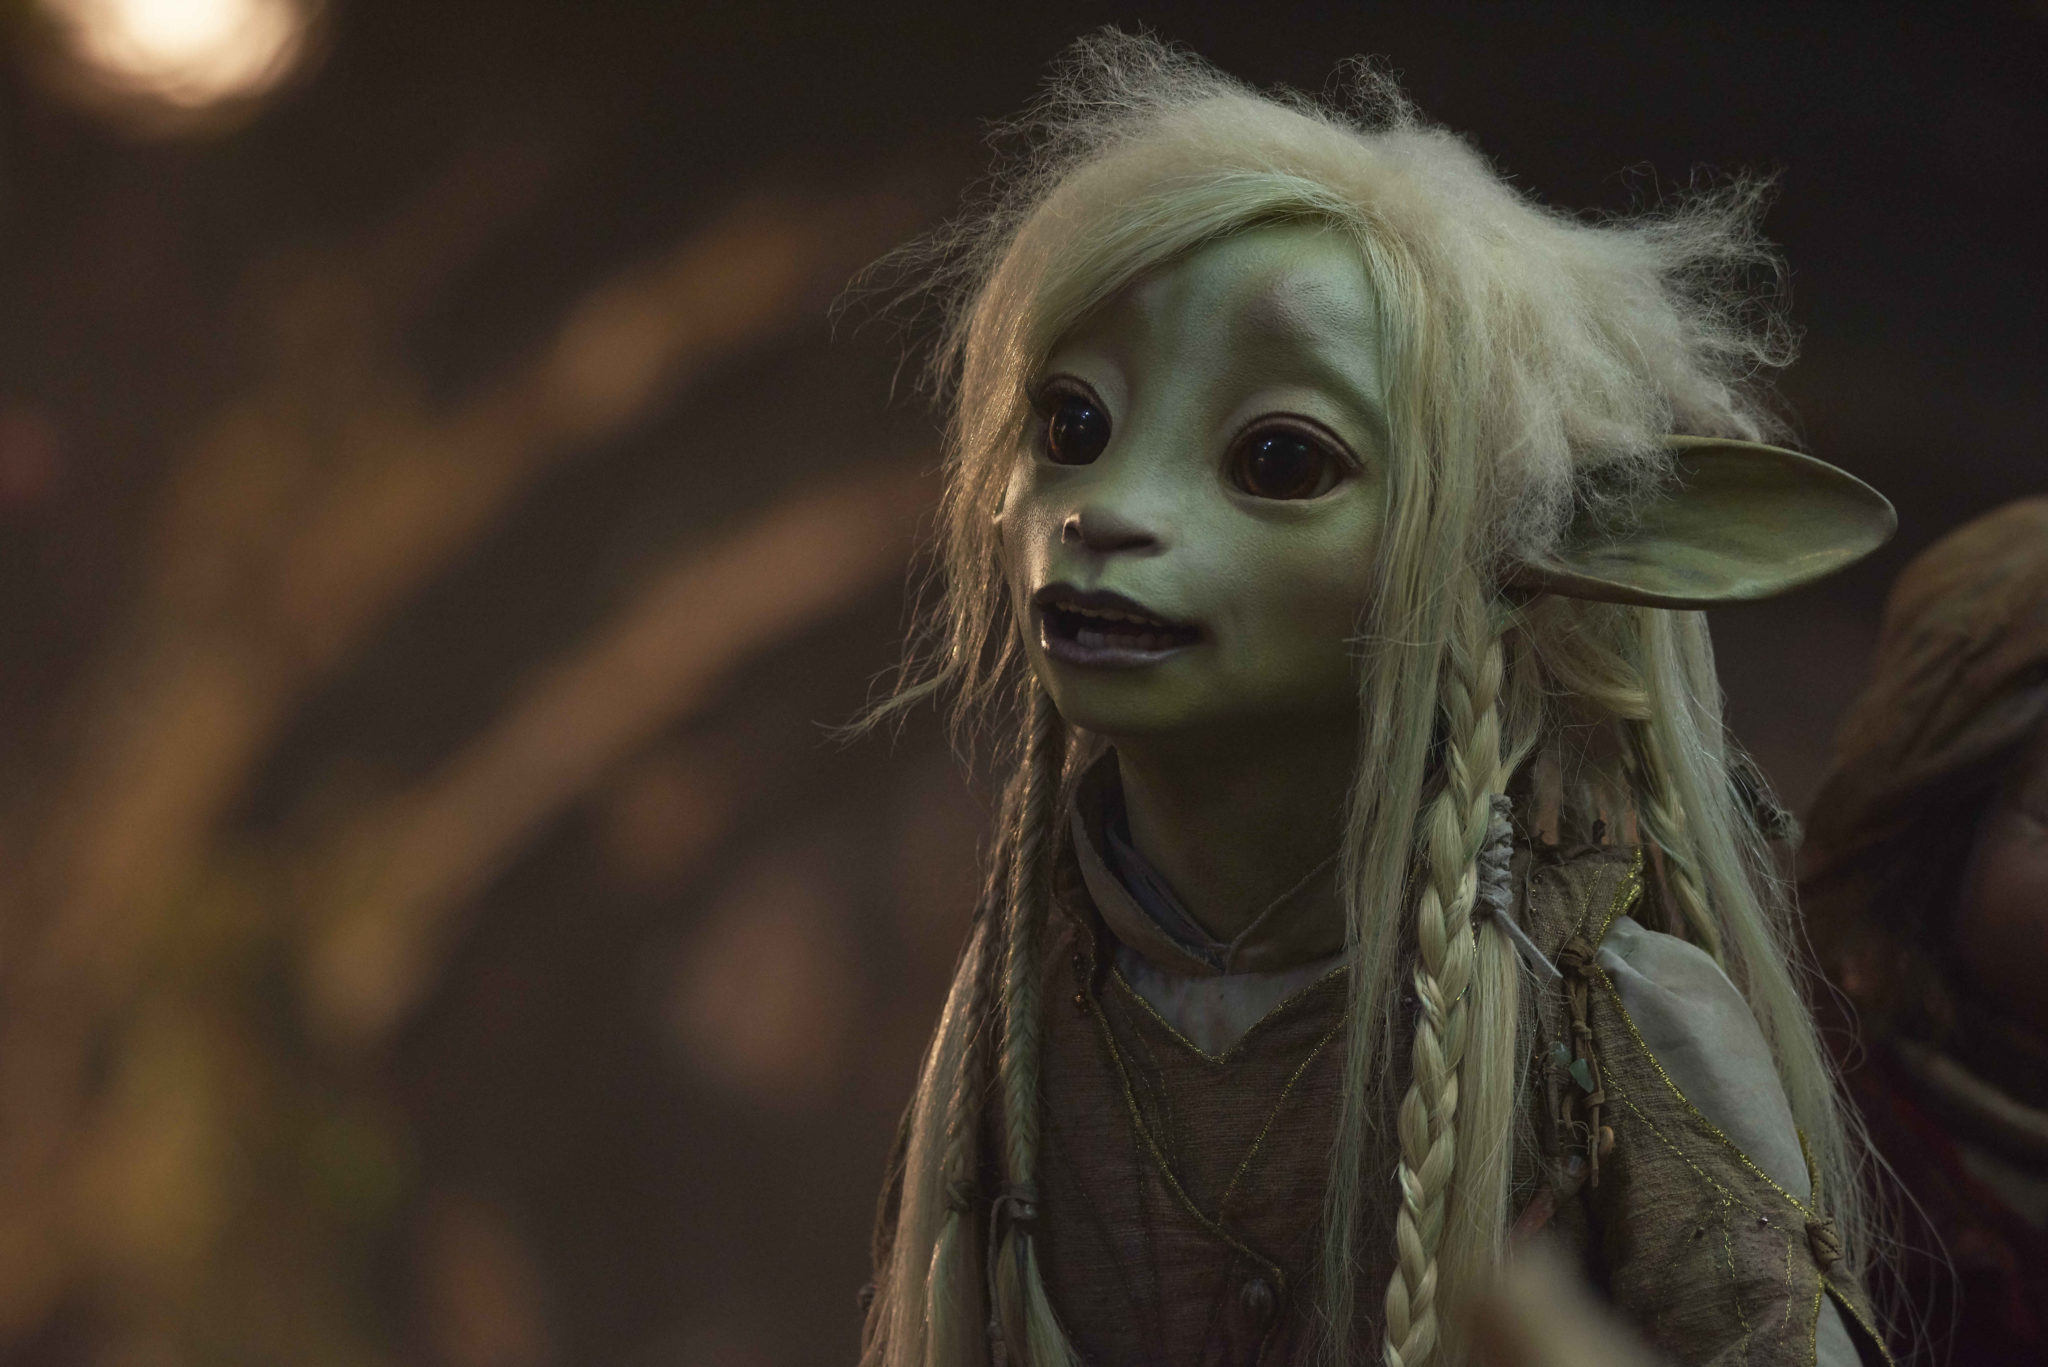 A scene from Episode 3 of <i>The Dark Crystal: Age of Resistance</i>